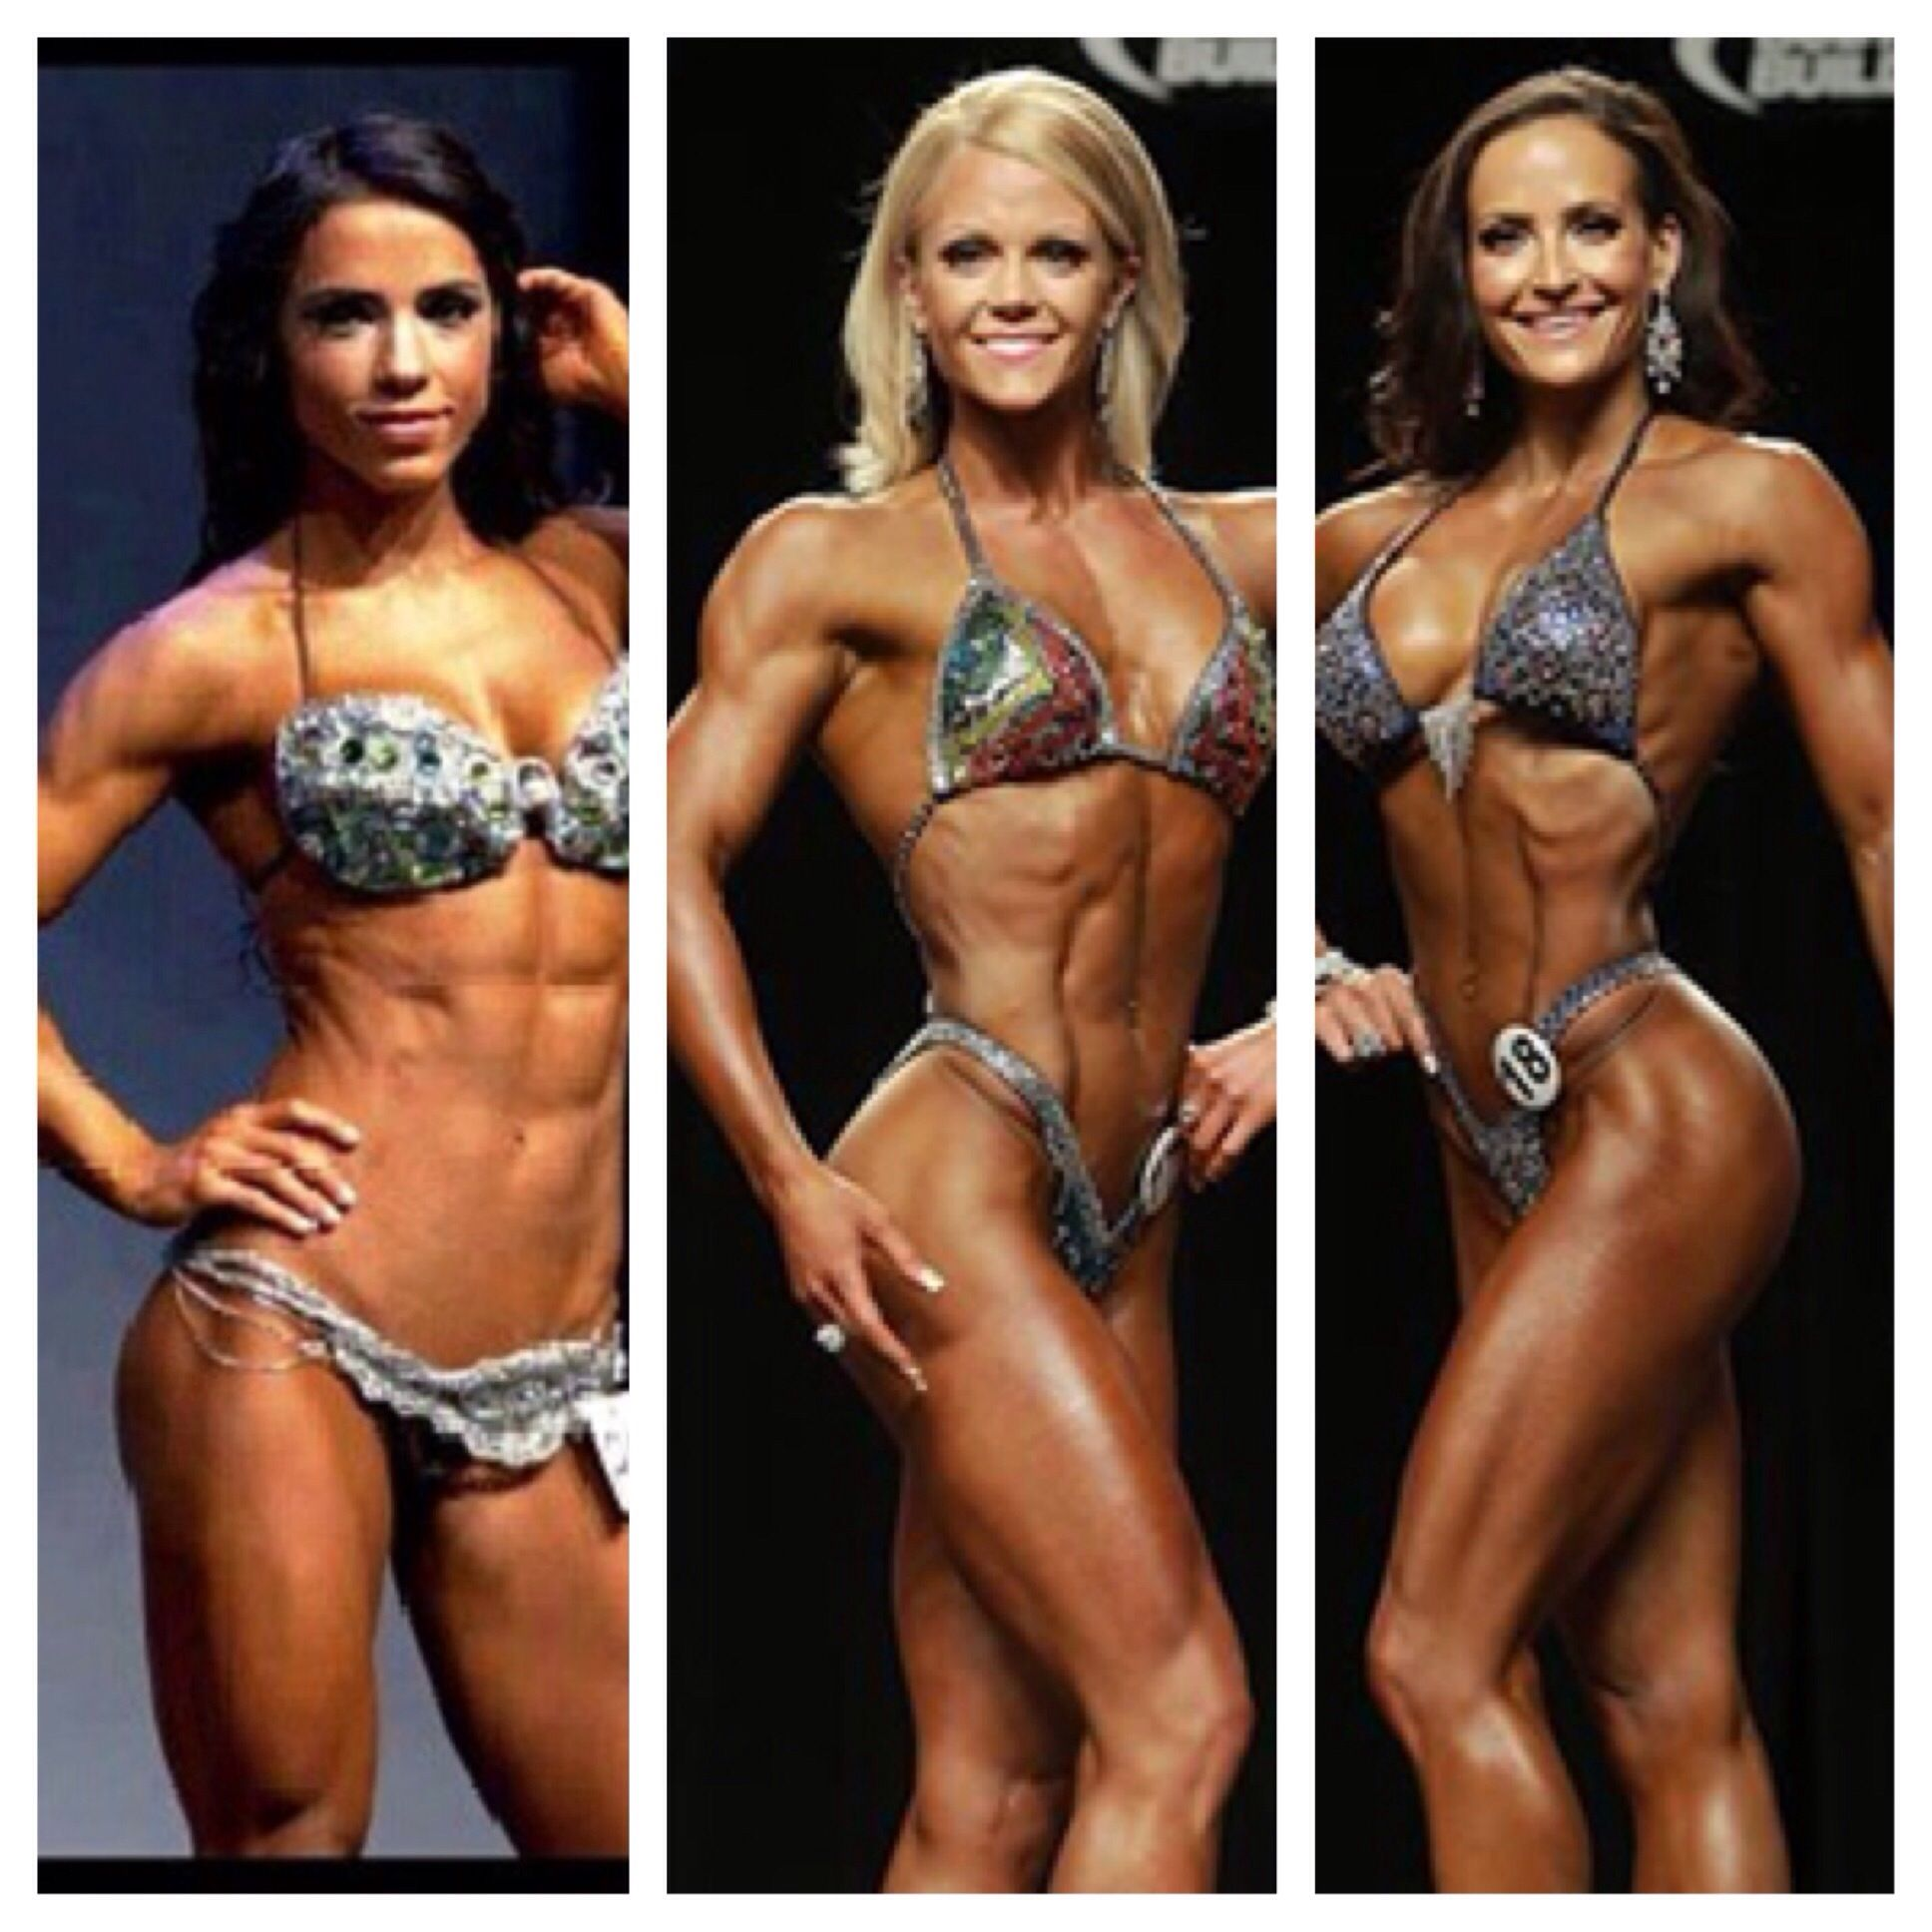 IFBB vs WBFF is there even a comparison? No! Sick of the NPC/IFBB